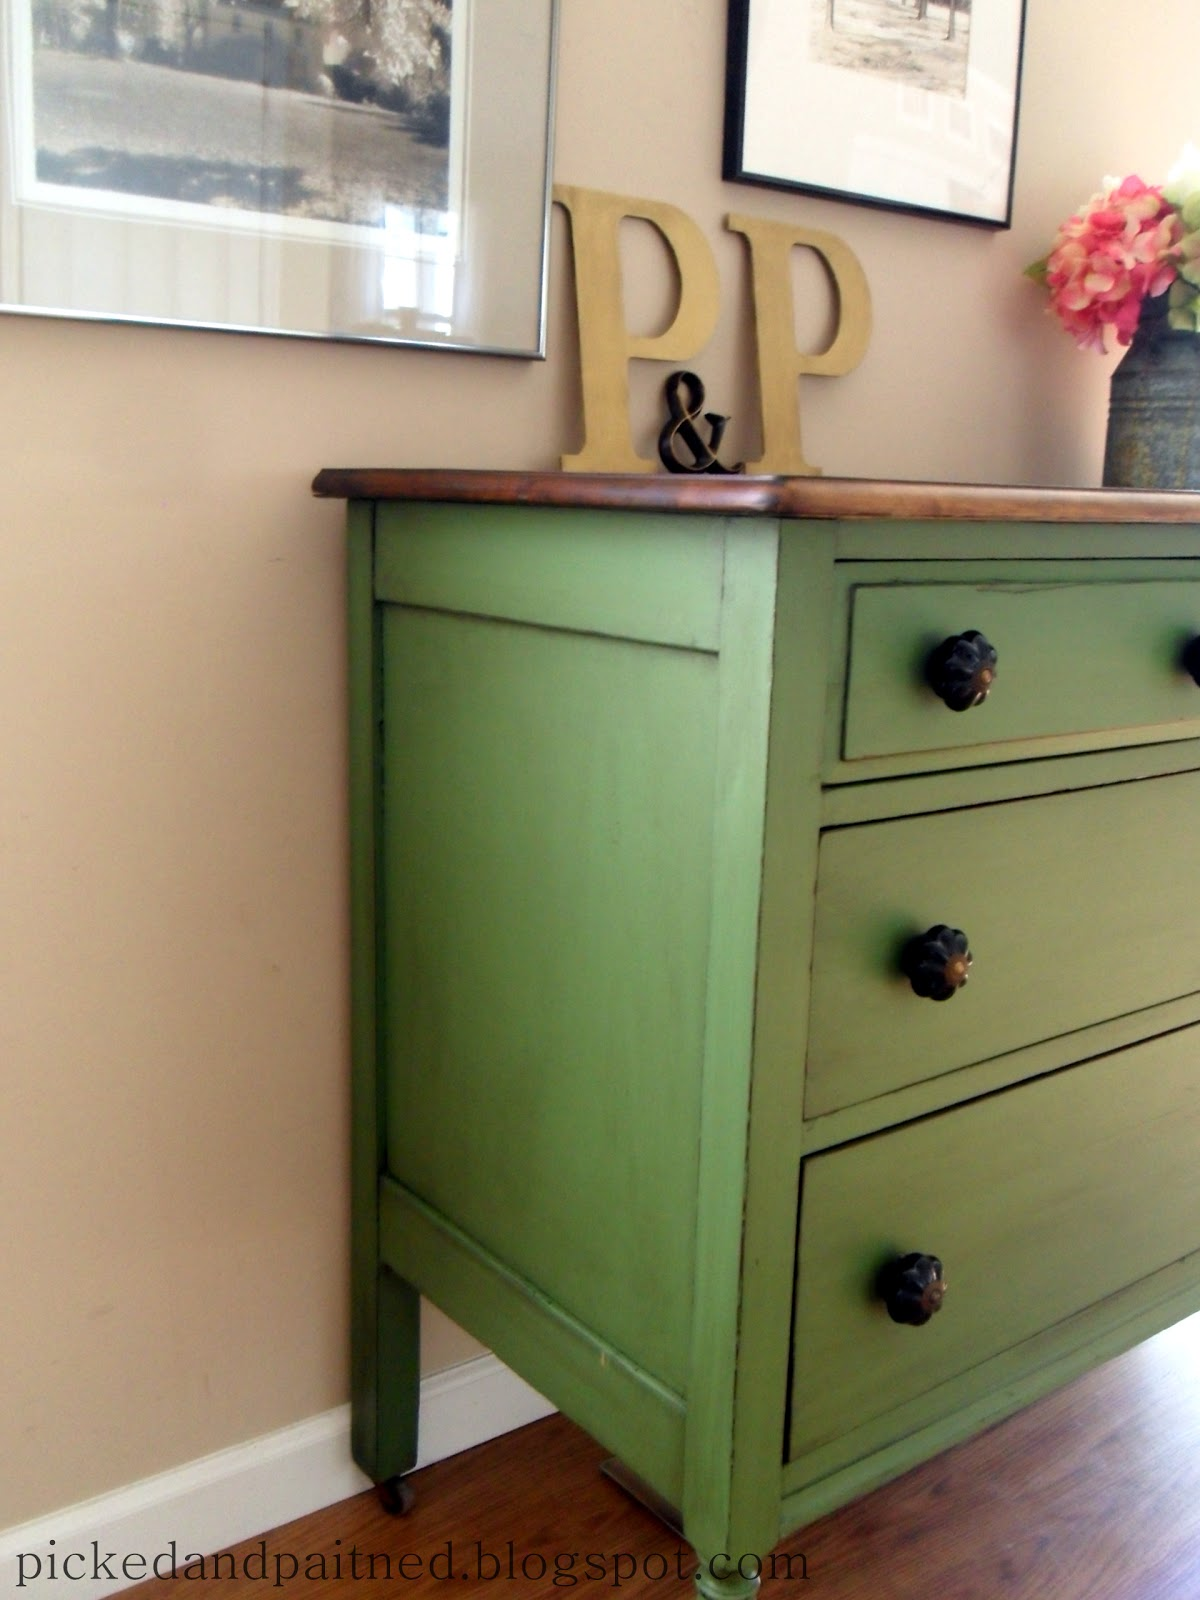 Helen Nichole Designs. furniture made pretty - Helen Nichole Designs: Vintage Green Dresser